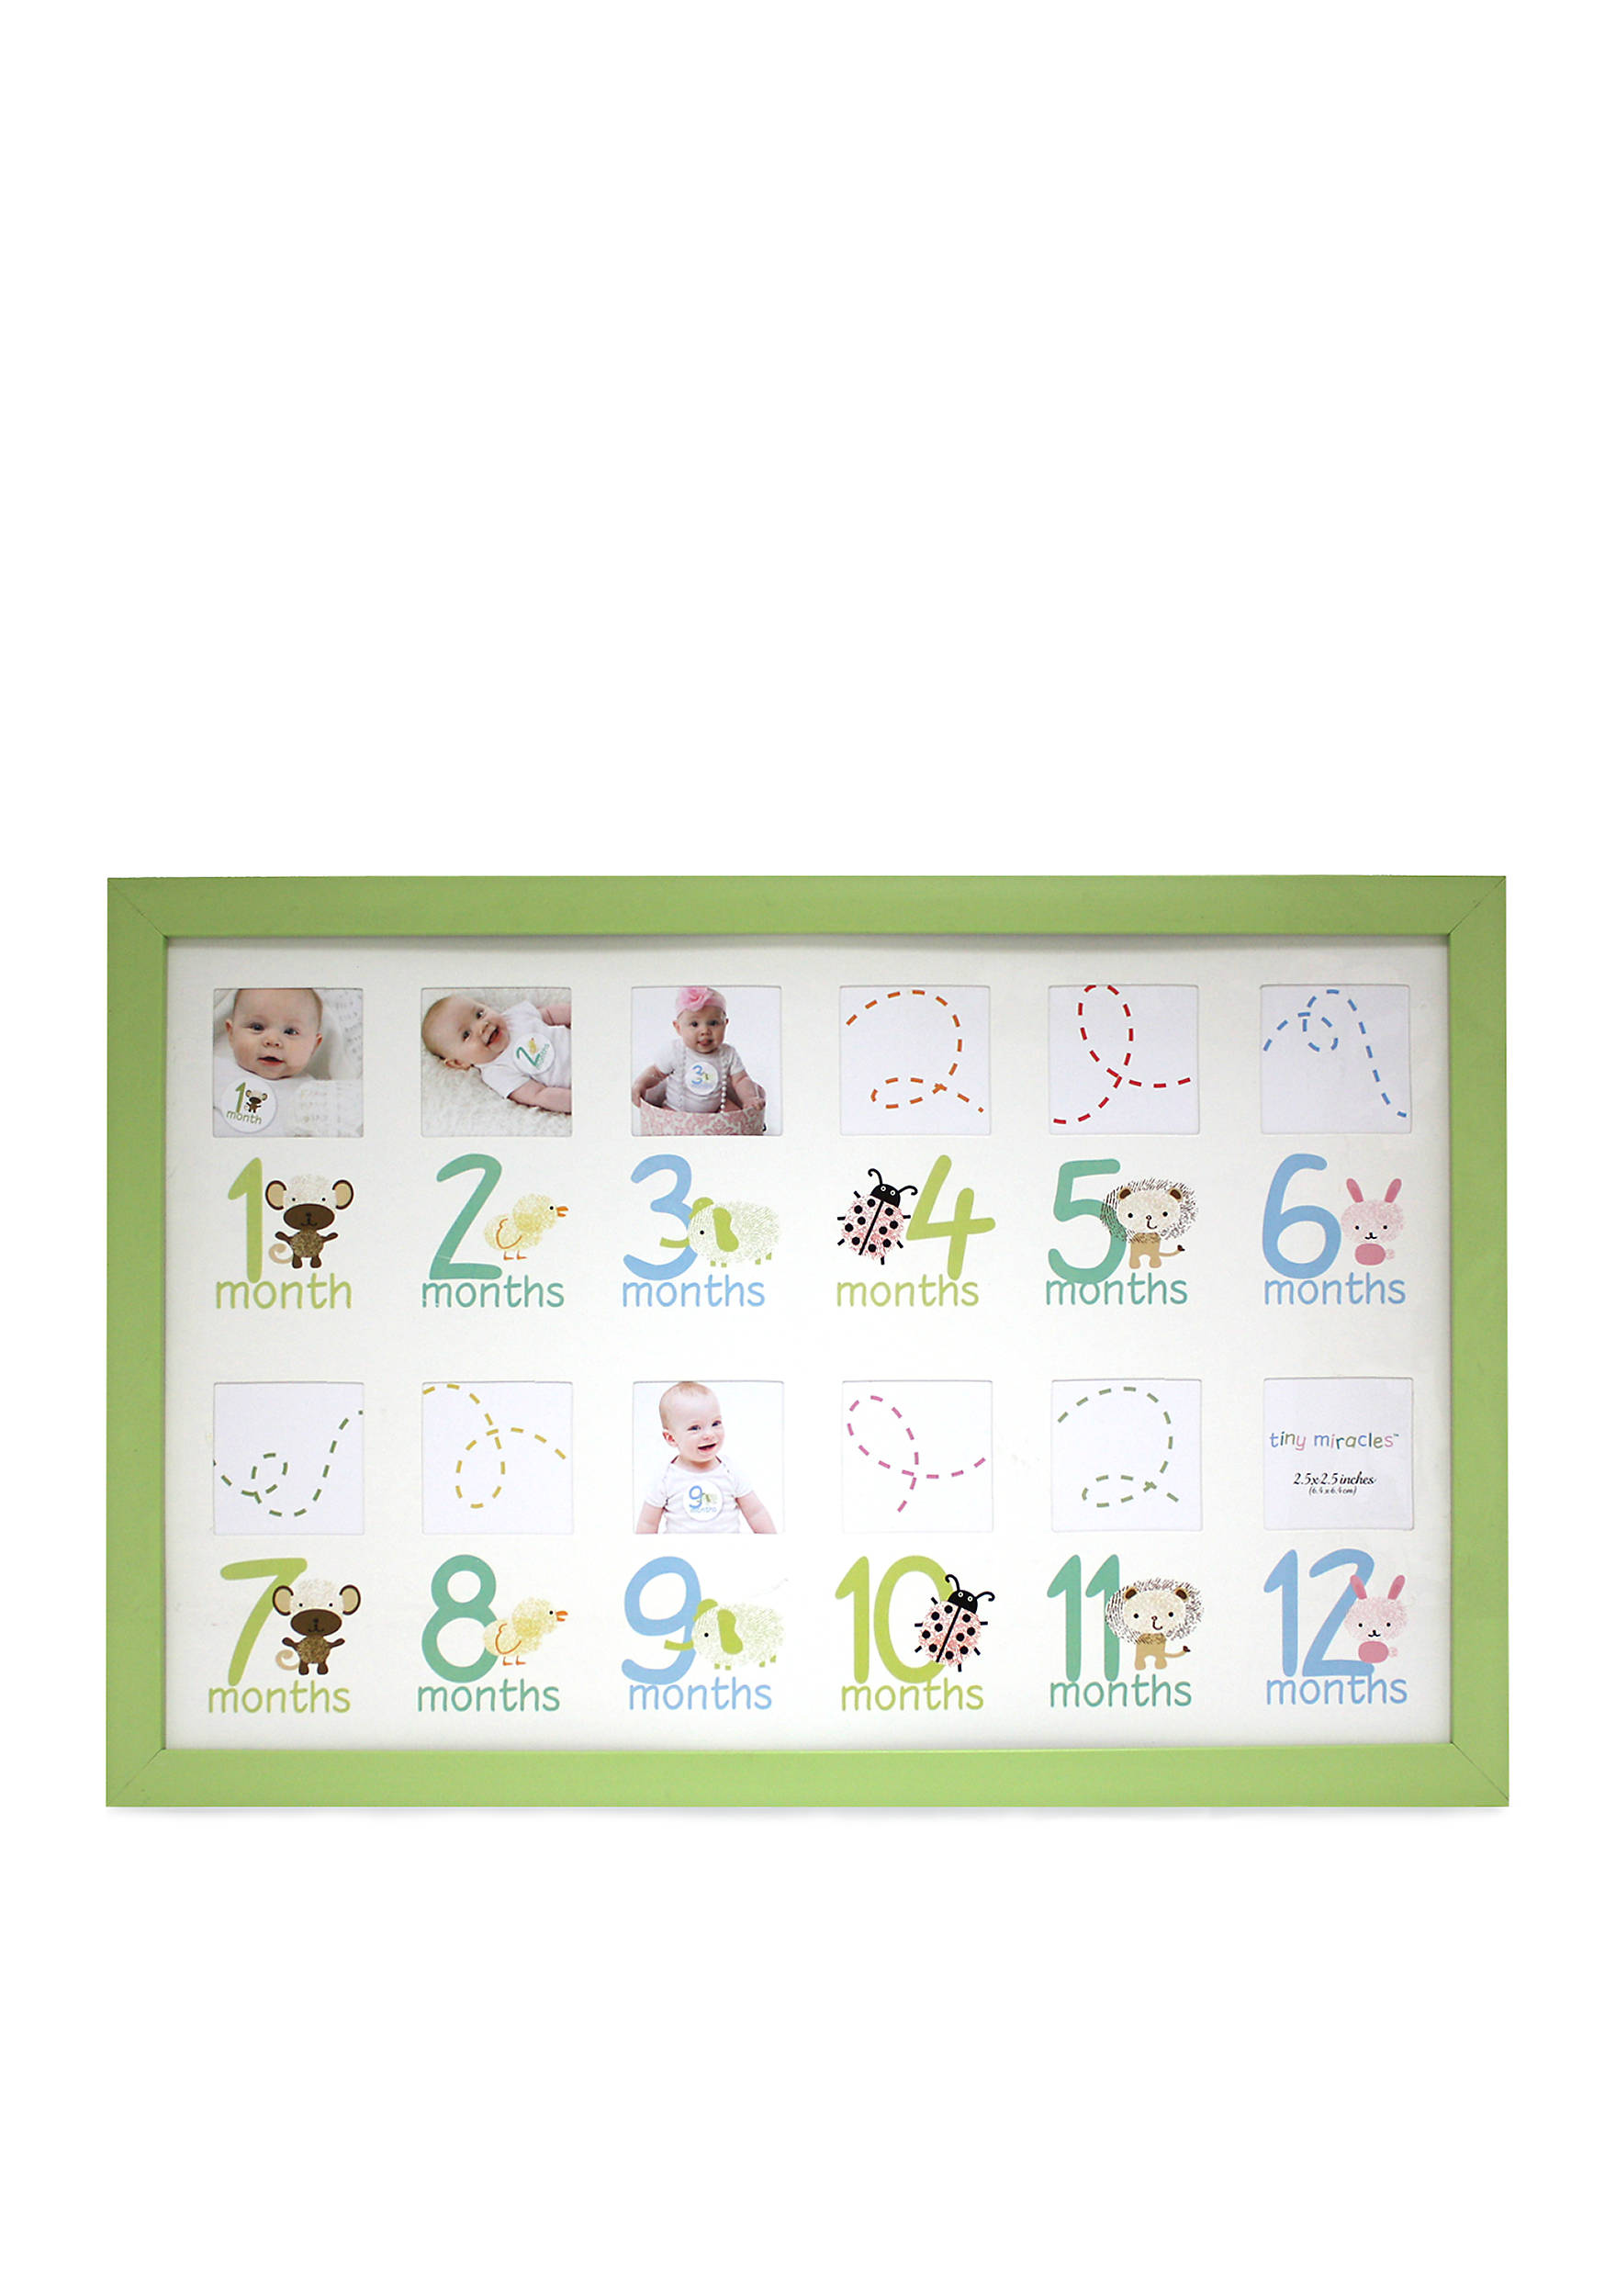 Fetco home dcor darling 12 month collage frame belk images jeuxipadfo Gallery